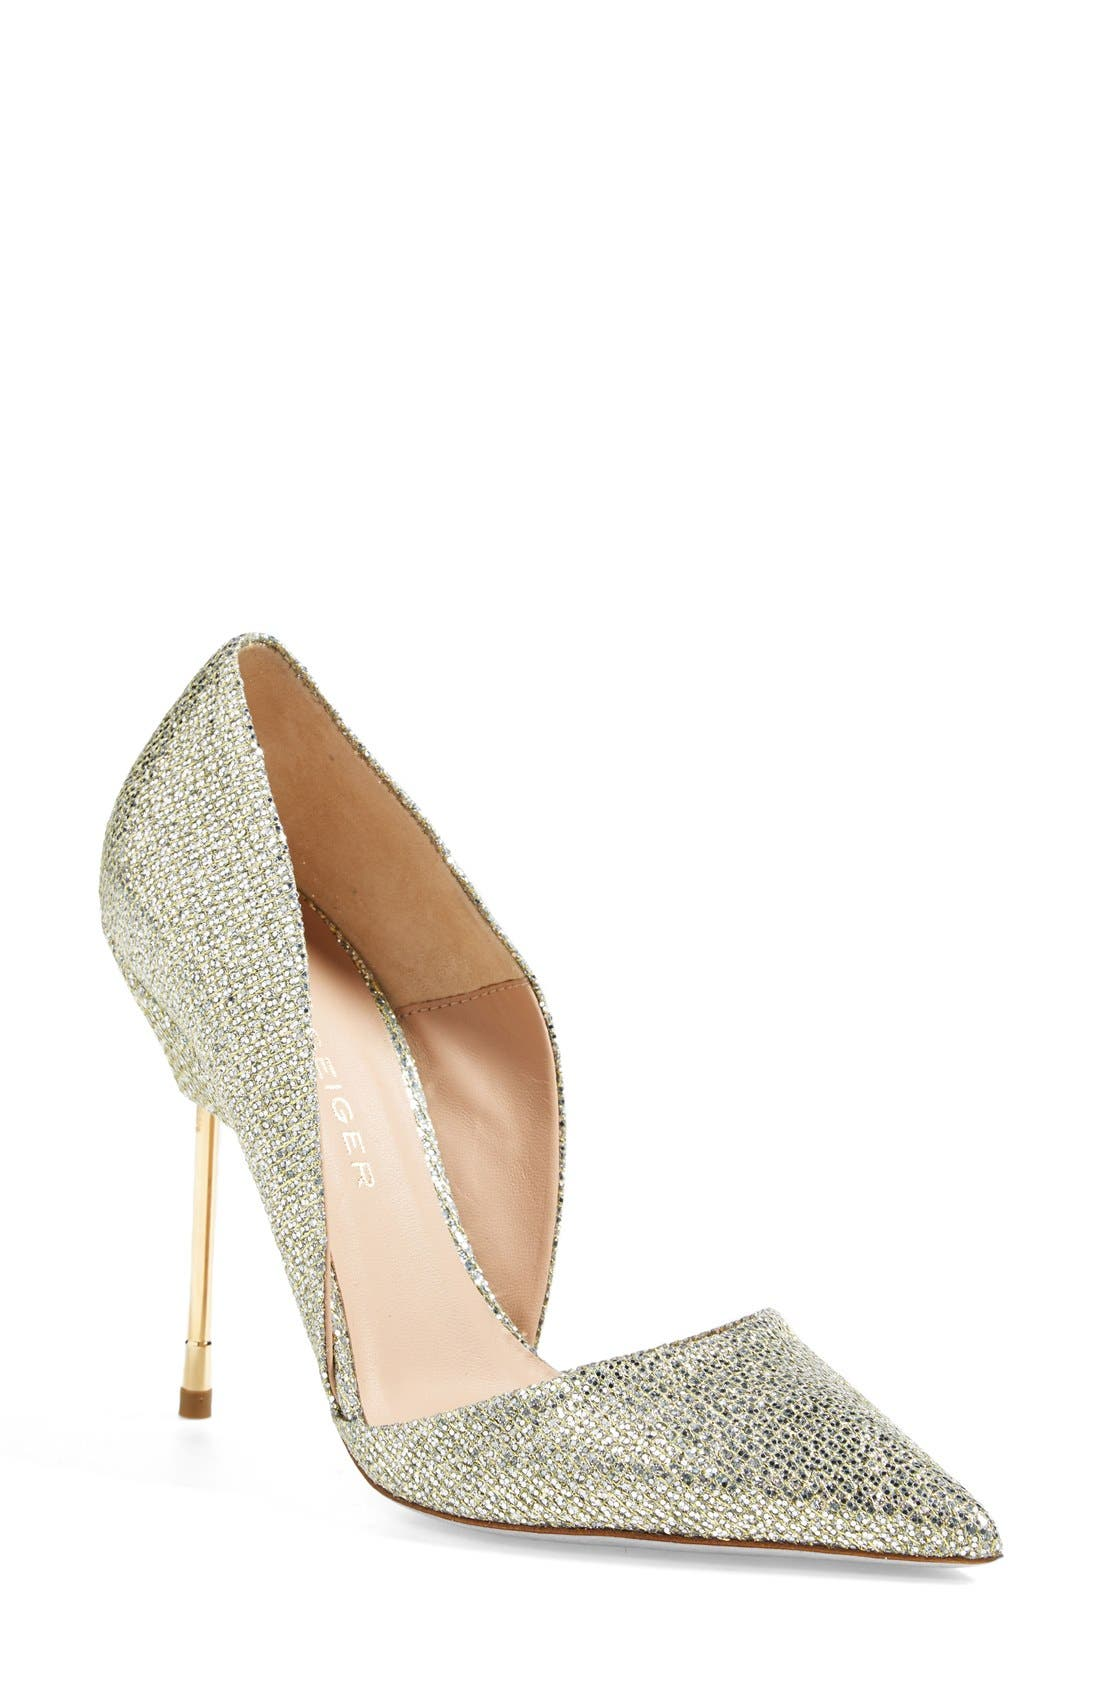 Main Image - Kurt Geiger London 'Bond 2' d'Orsay Pump (Women)